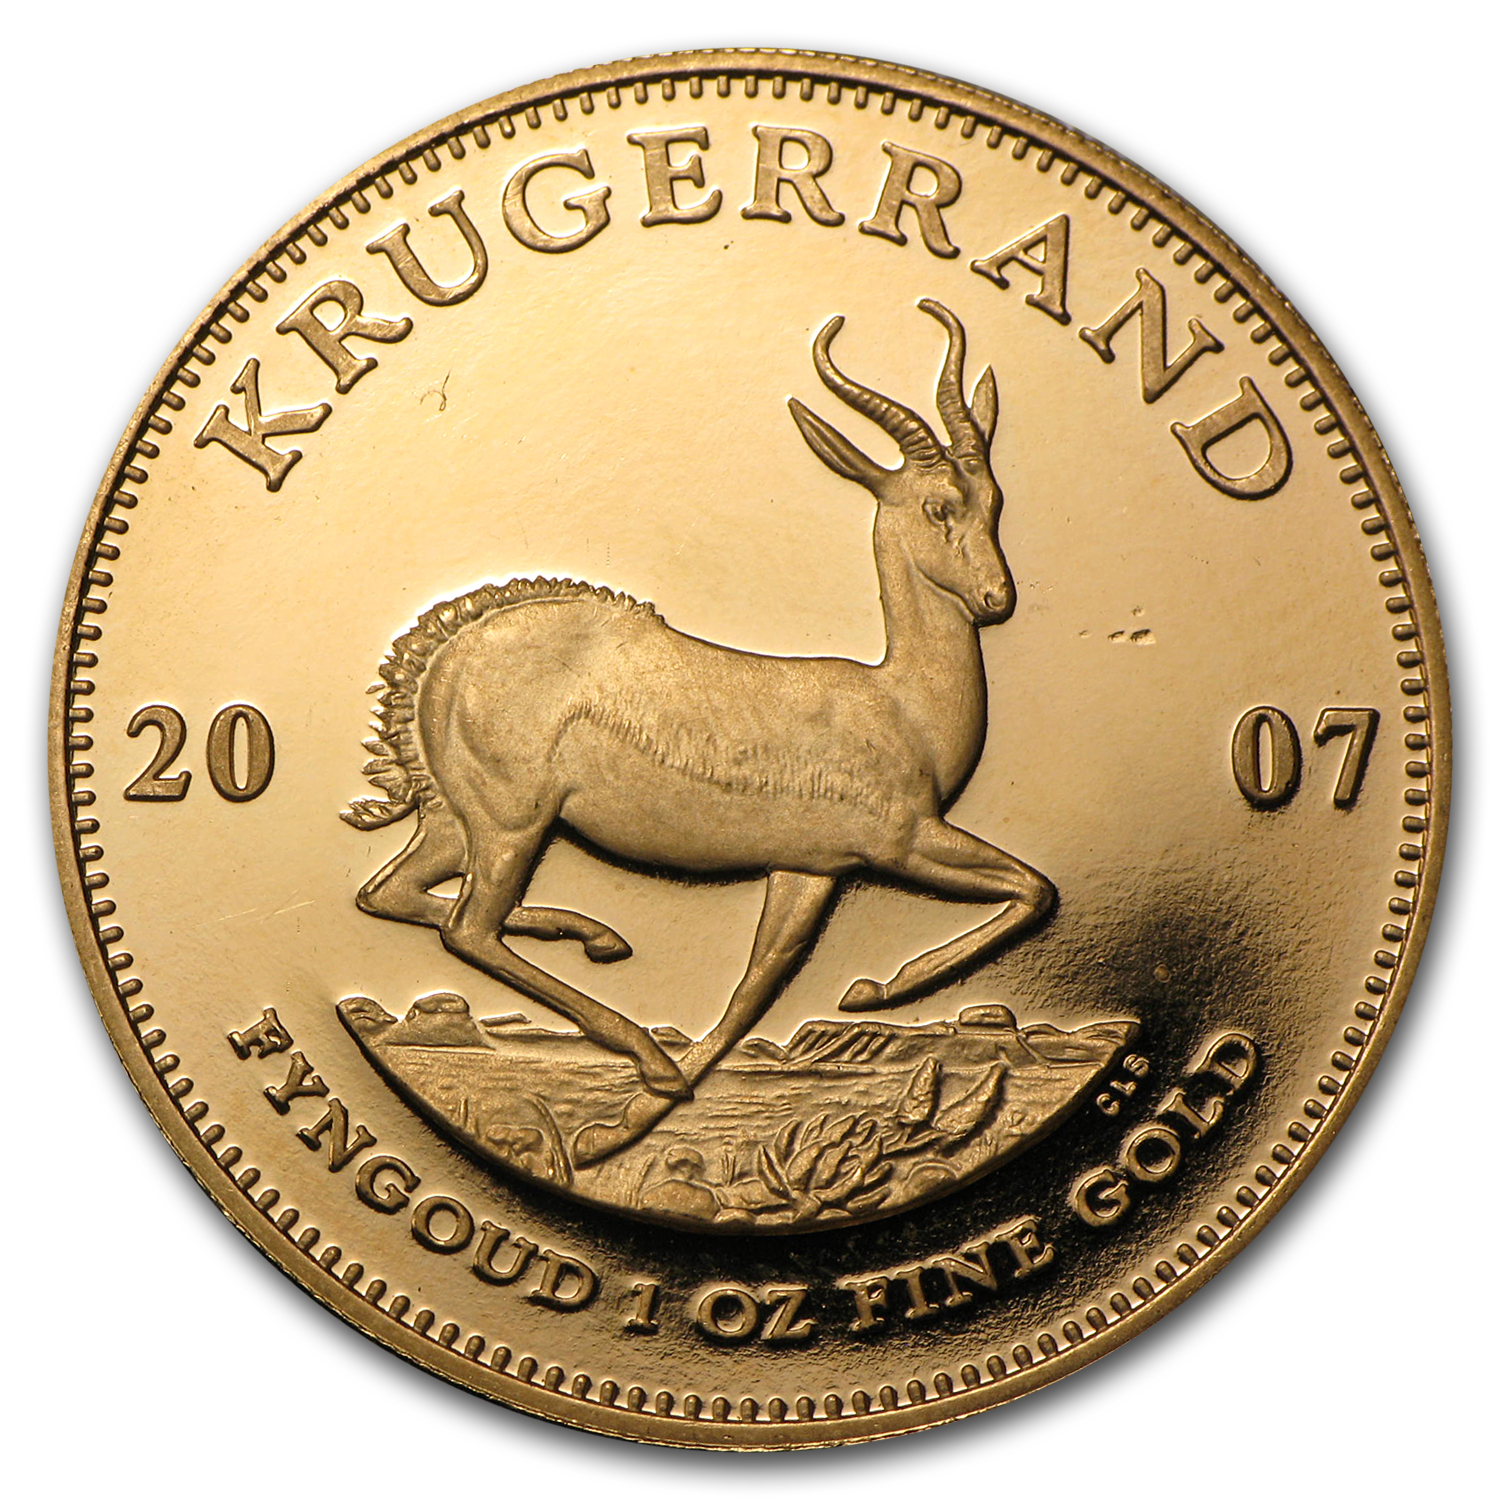 2007 1 oz Gold South African Krugerrand (Proof)